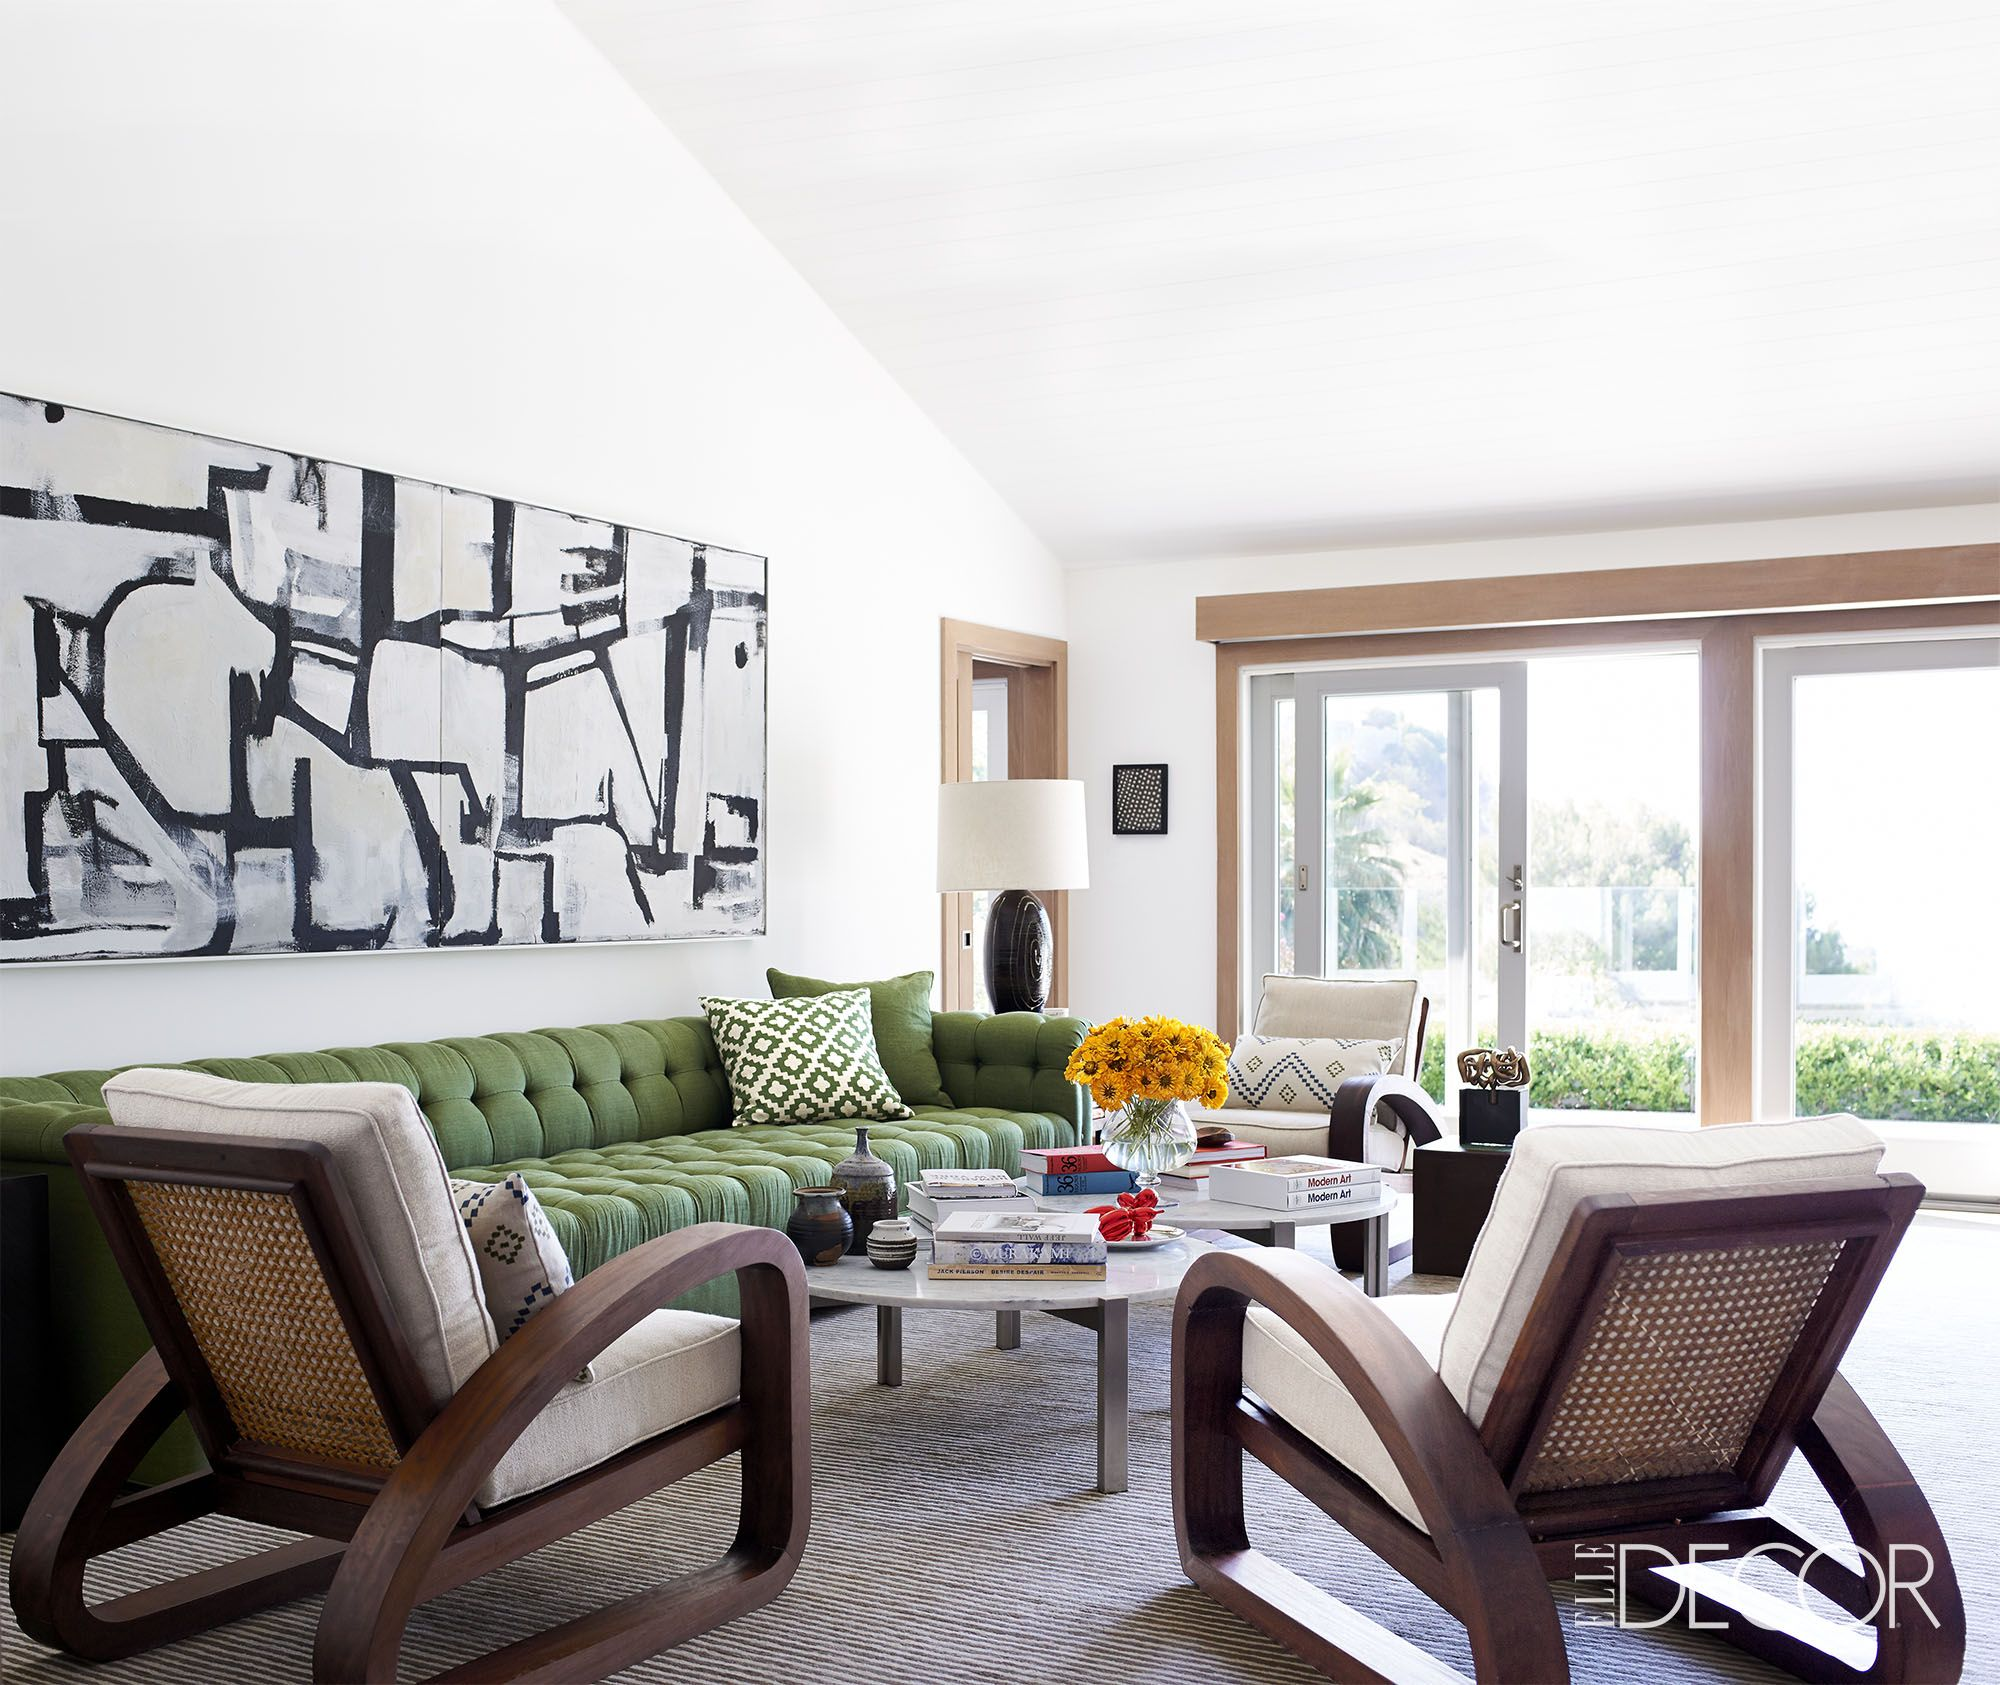 Difference Between Modern And Contemporary: 25 Mid Century Modern Living Rooms